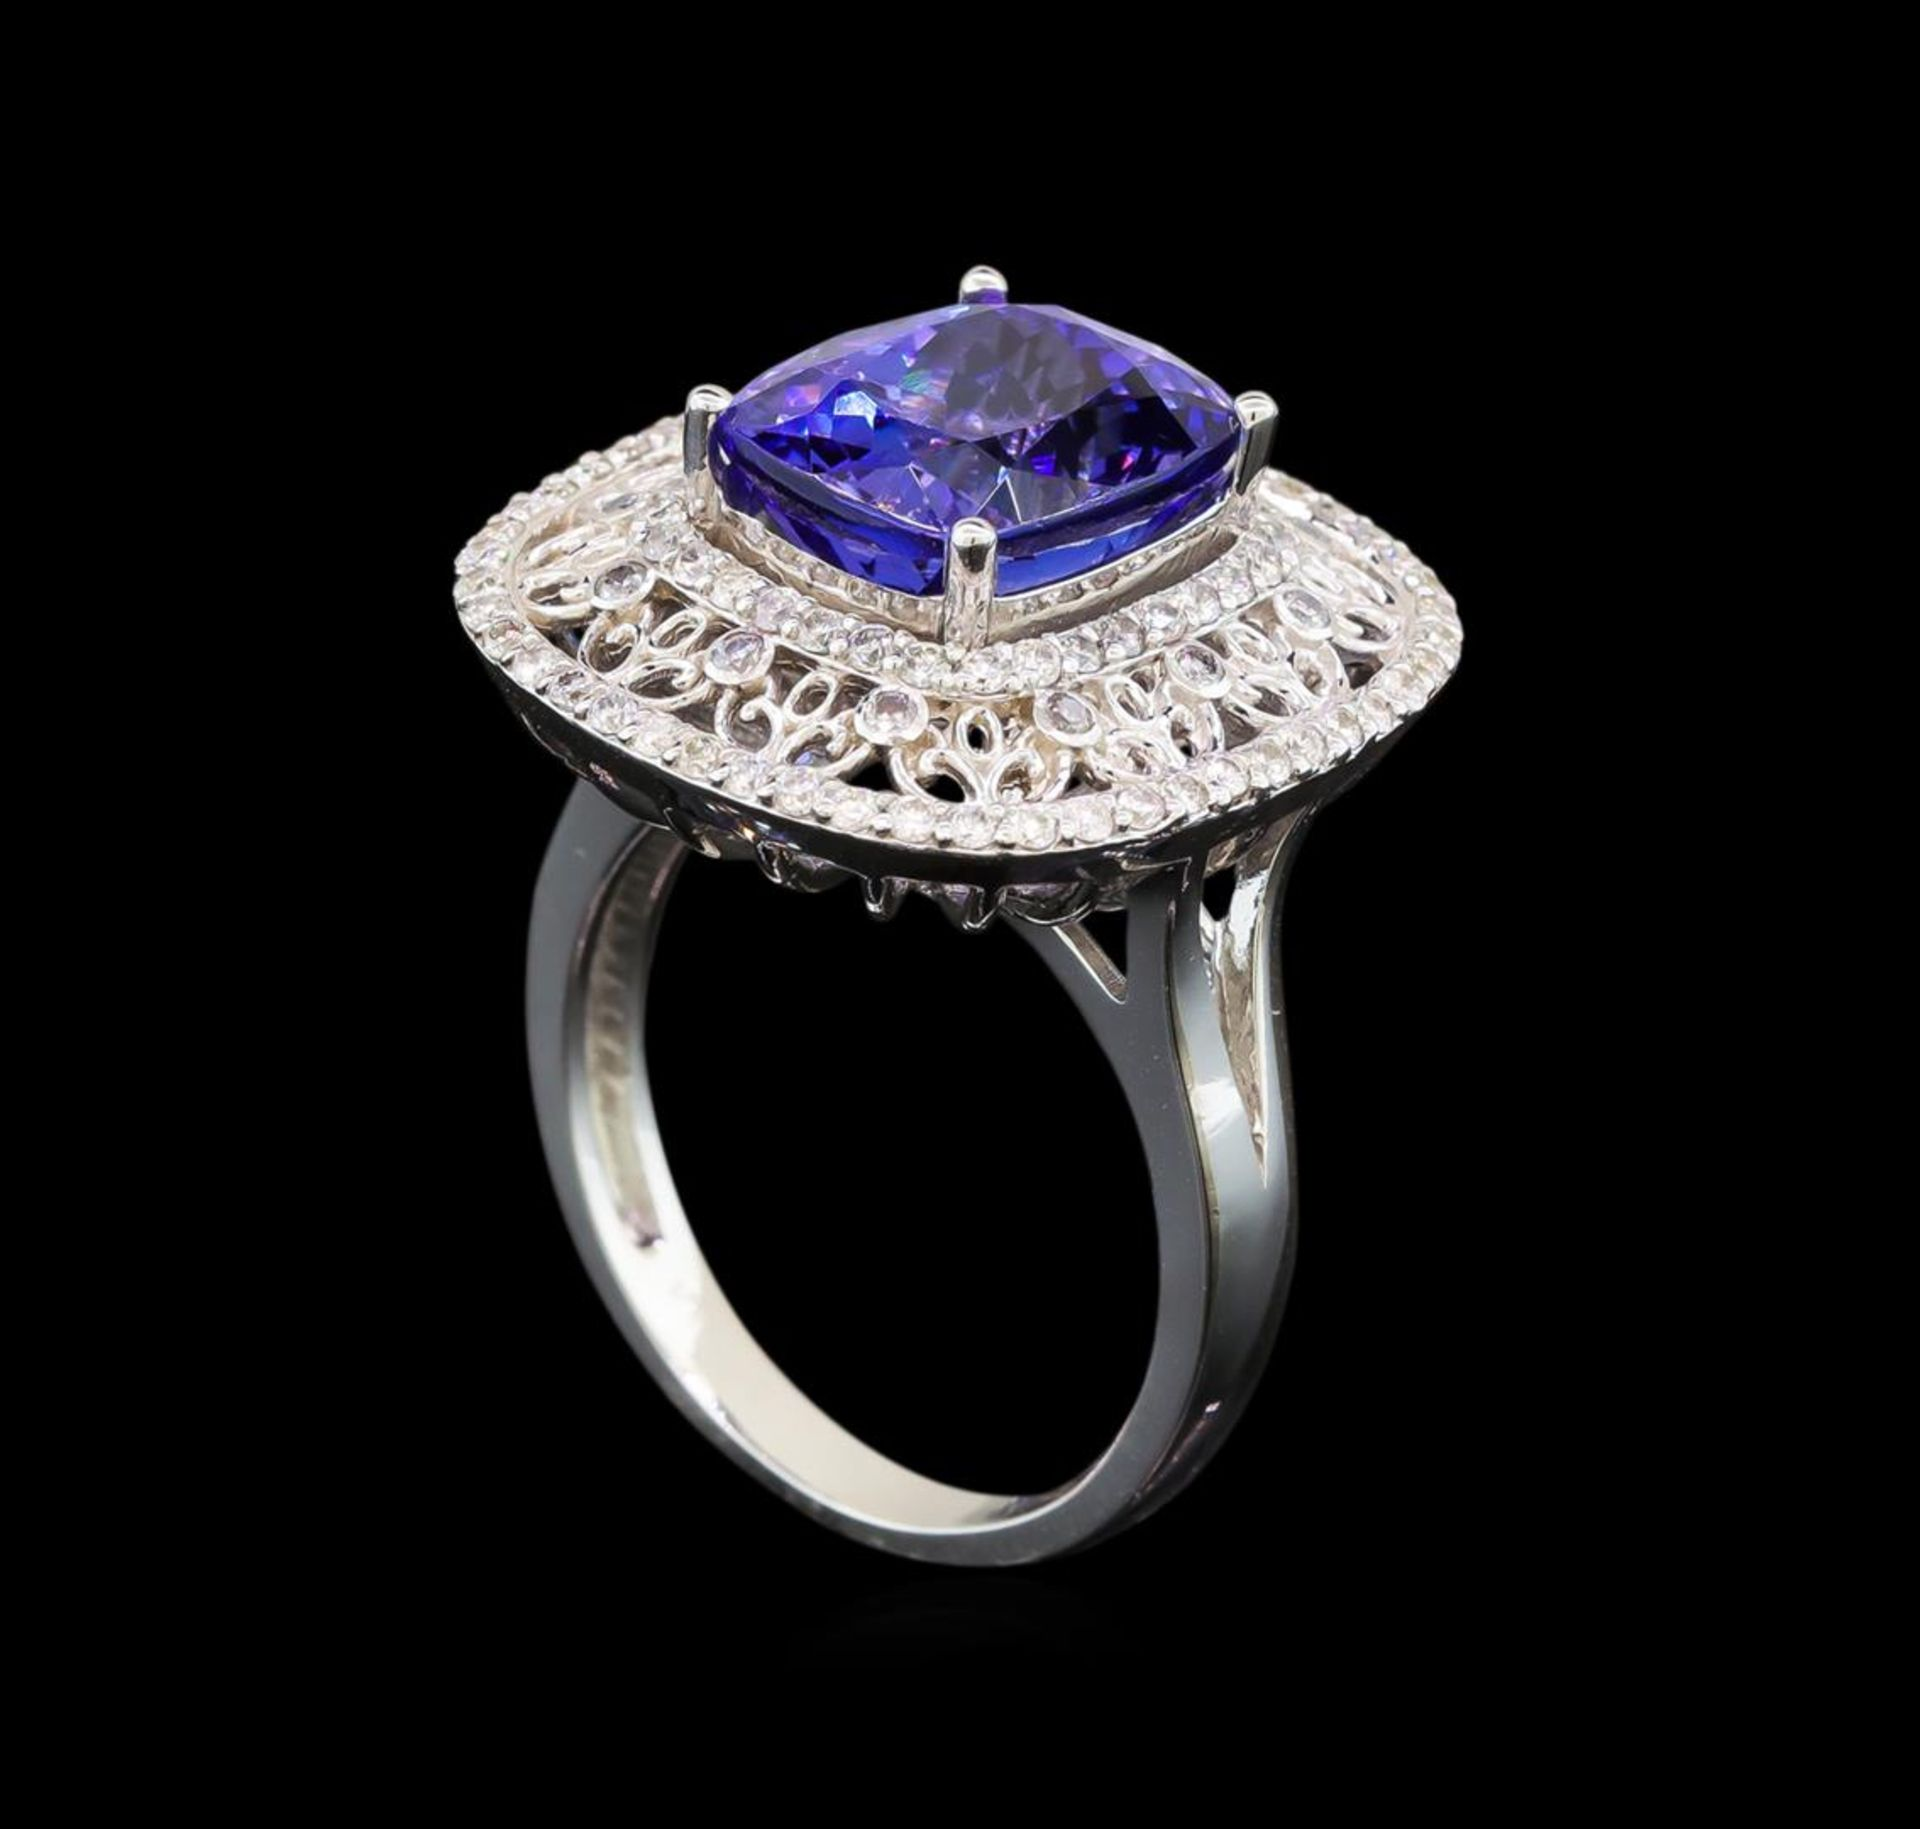 14KT White Gold 5.29 ctw Tanzanite and Diamond Ring - Image 4 of 5